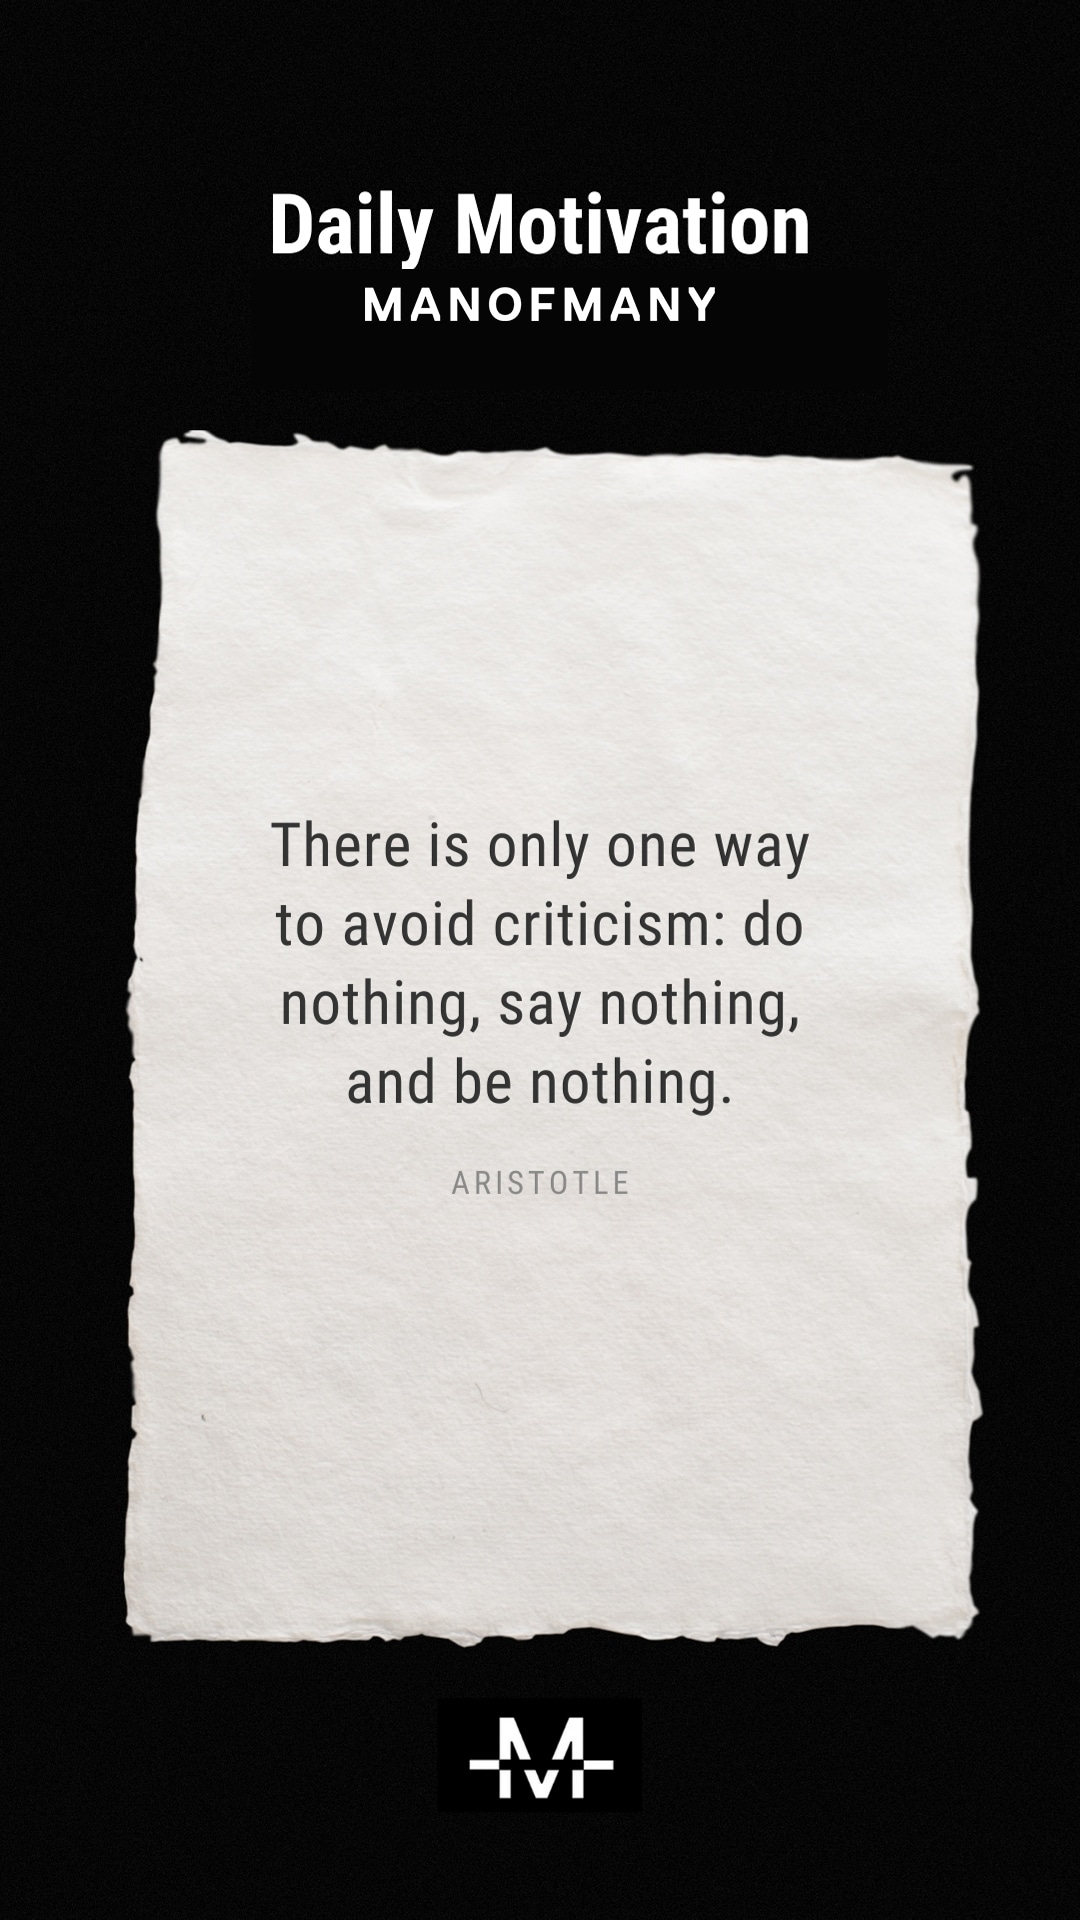 There is only one way to avoid criticism: do nothing, say nothing, and be nothing. –Aristotle quote